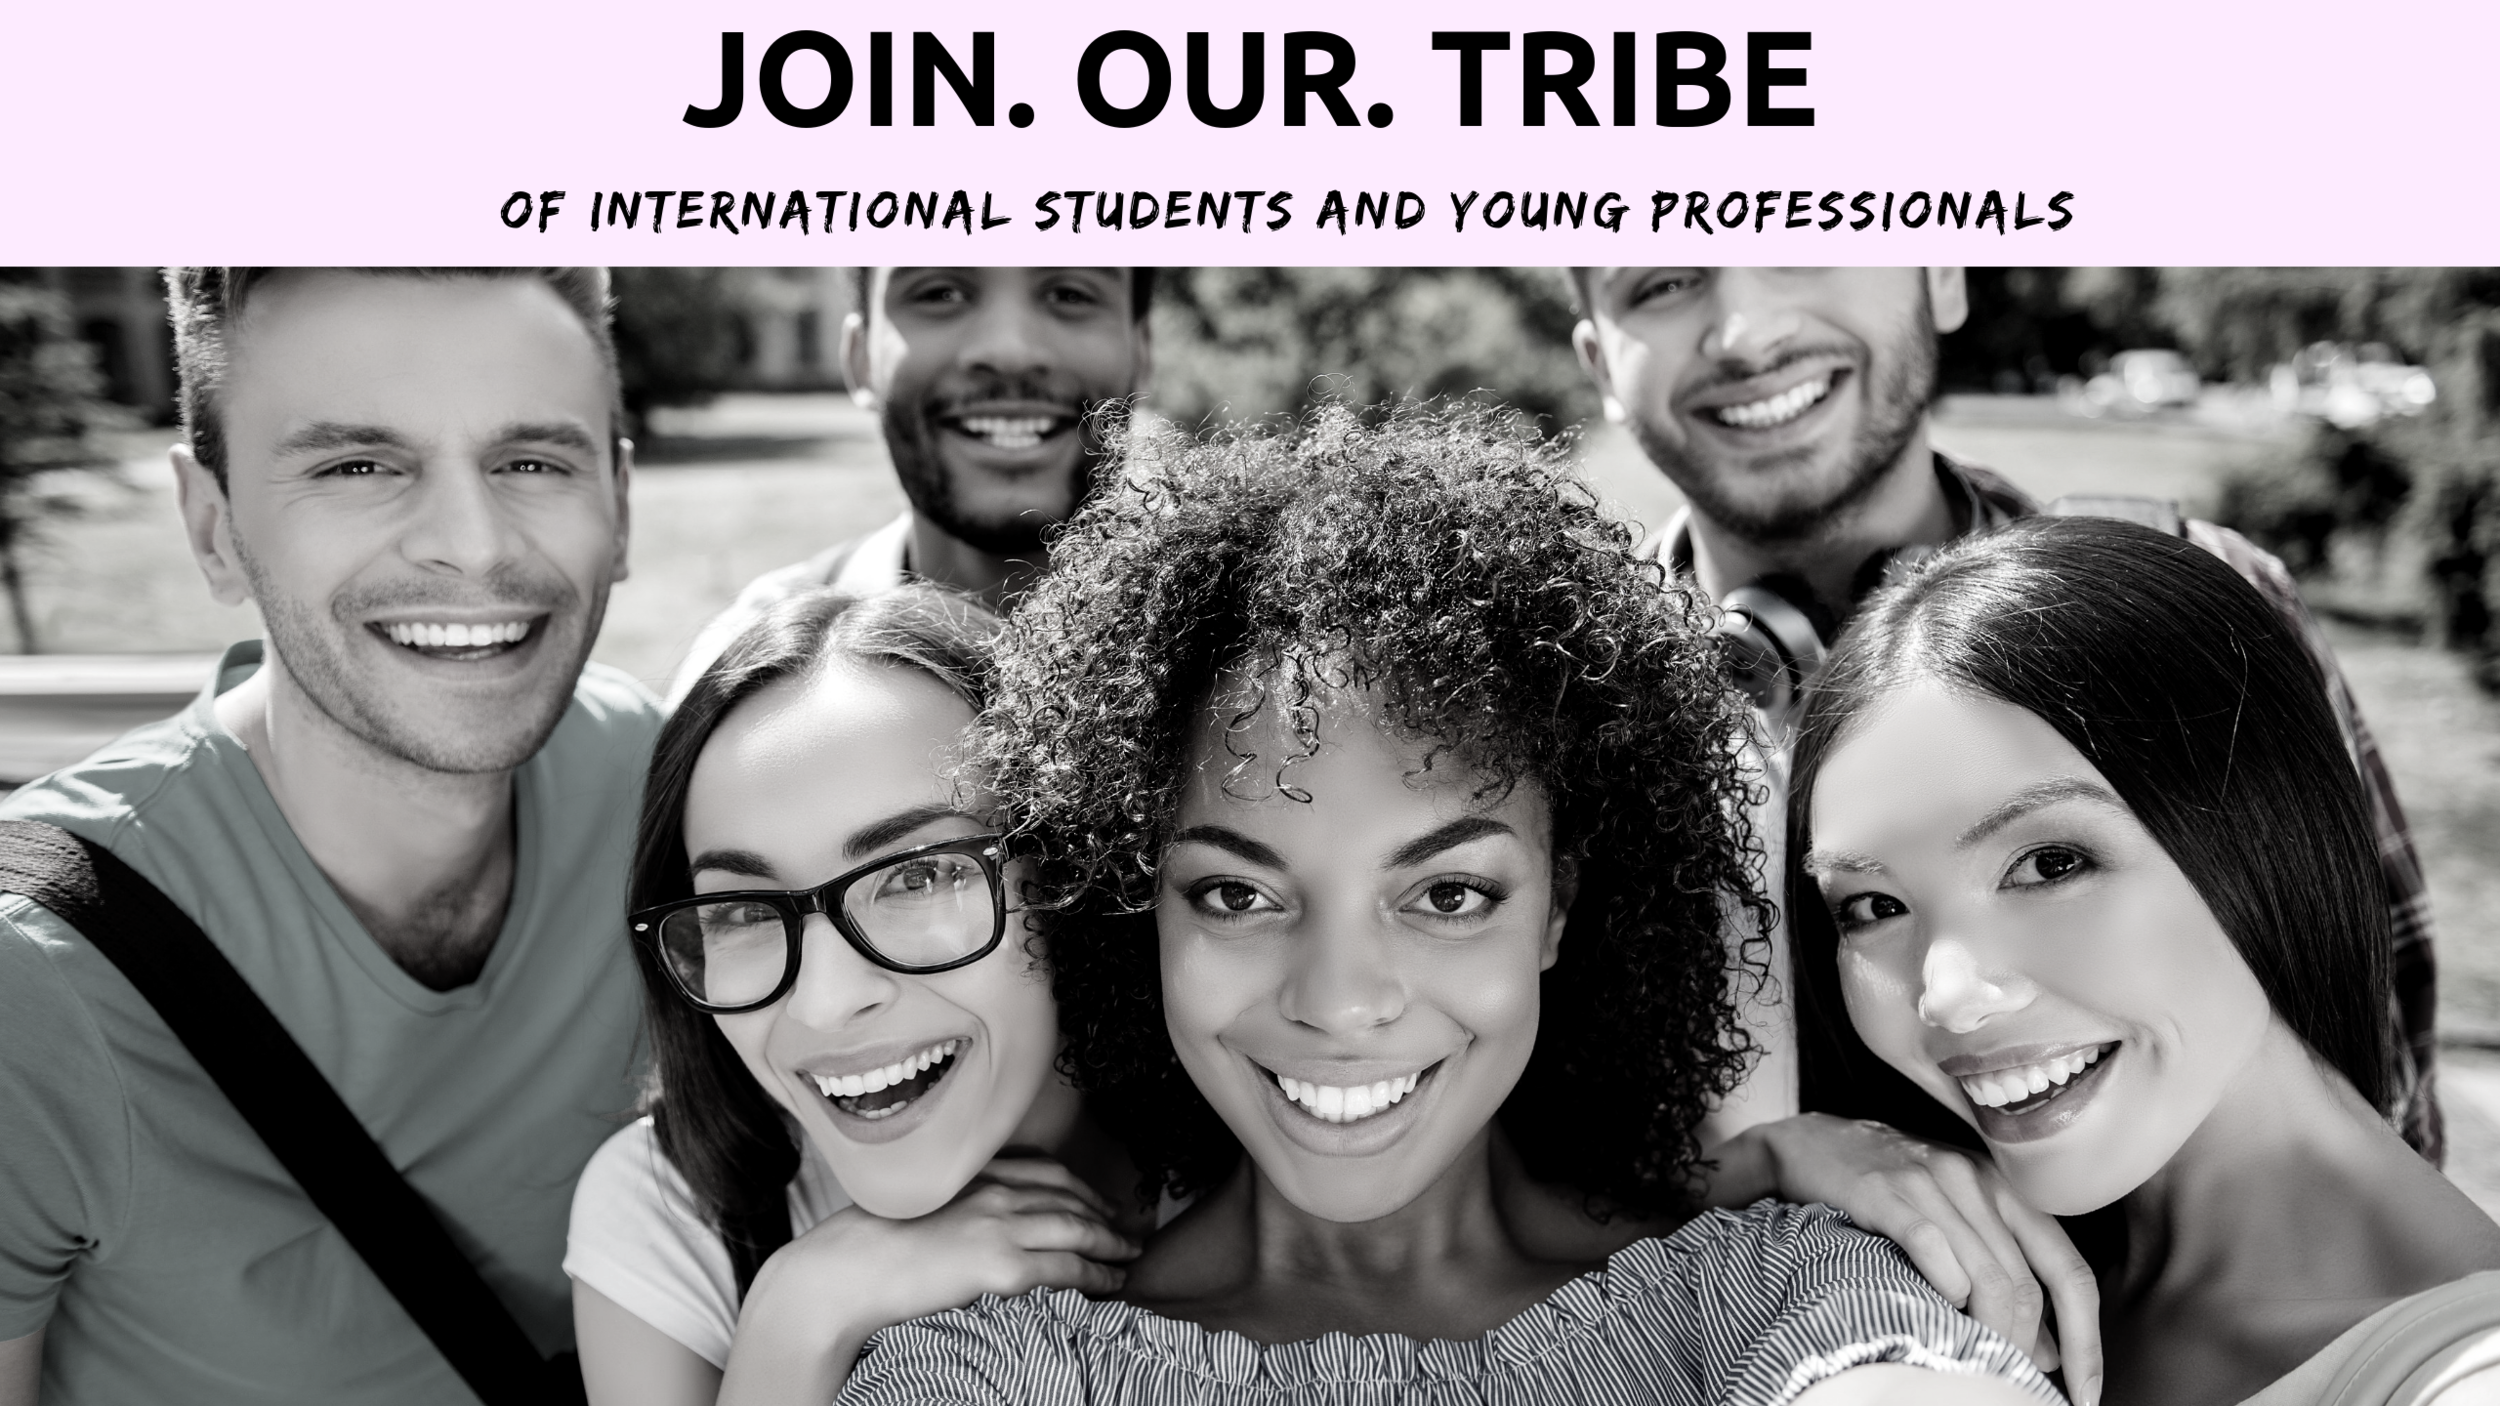 JOIN OUR TRIBE (5).png